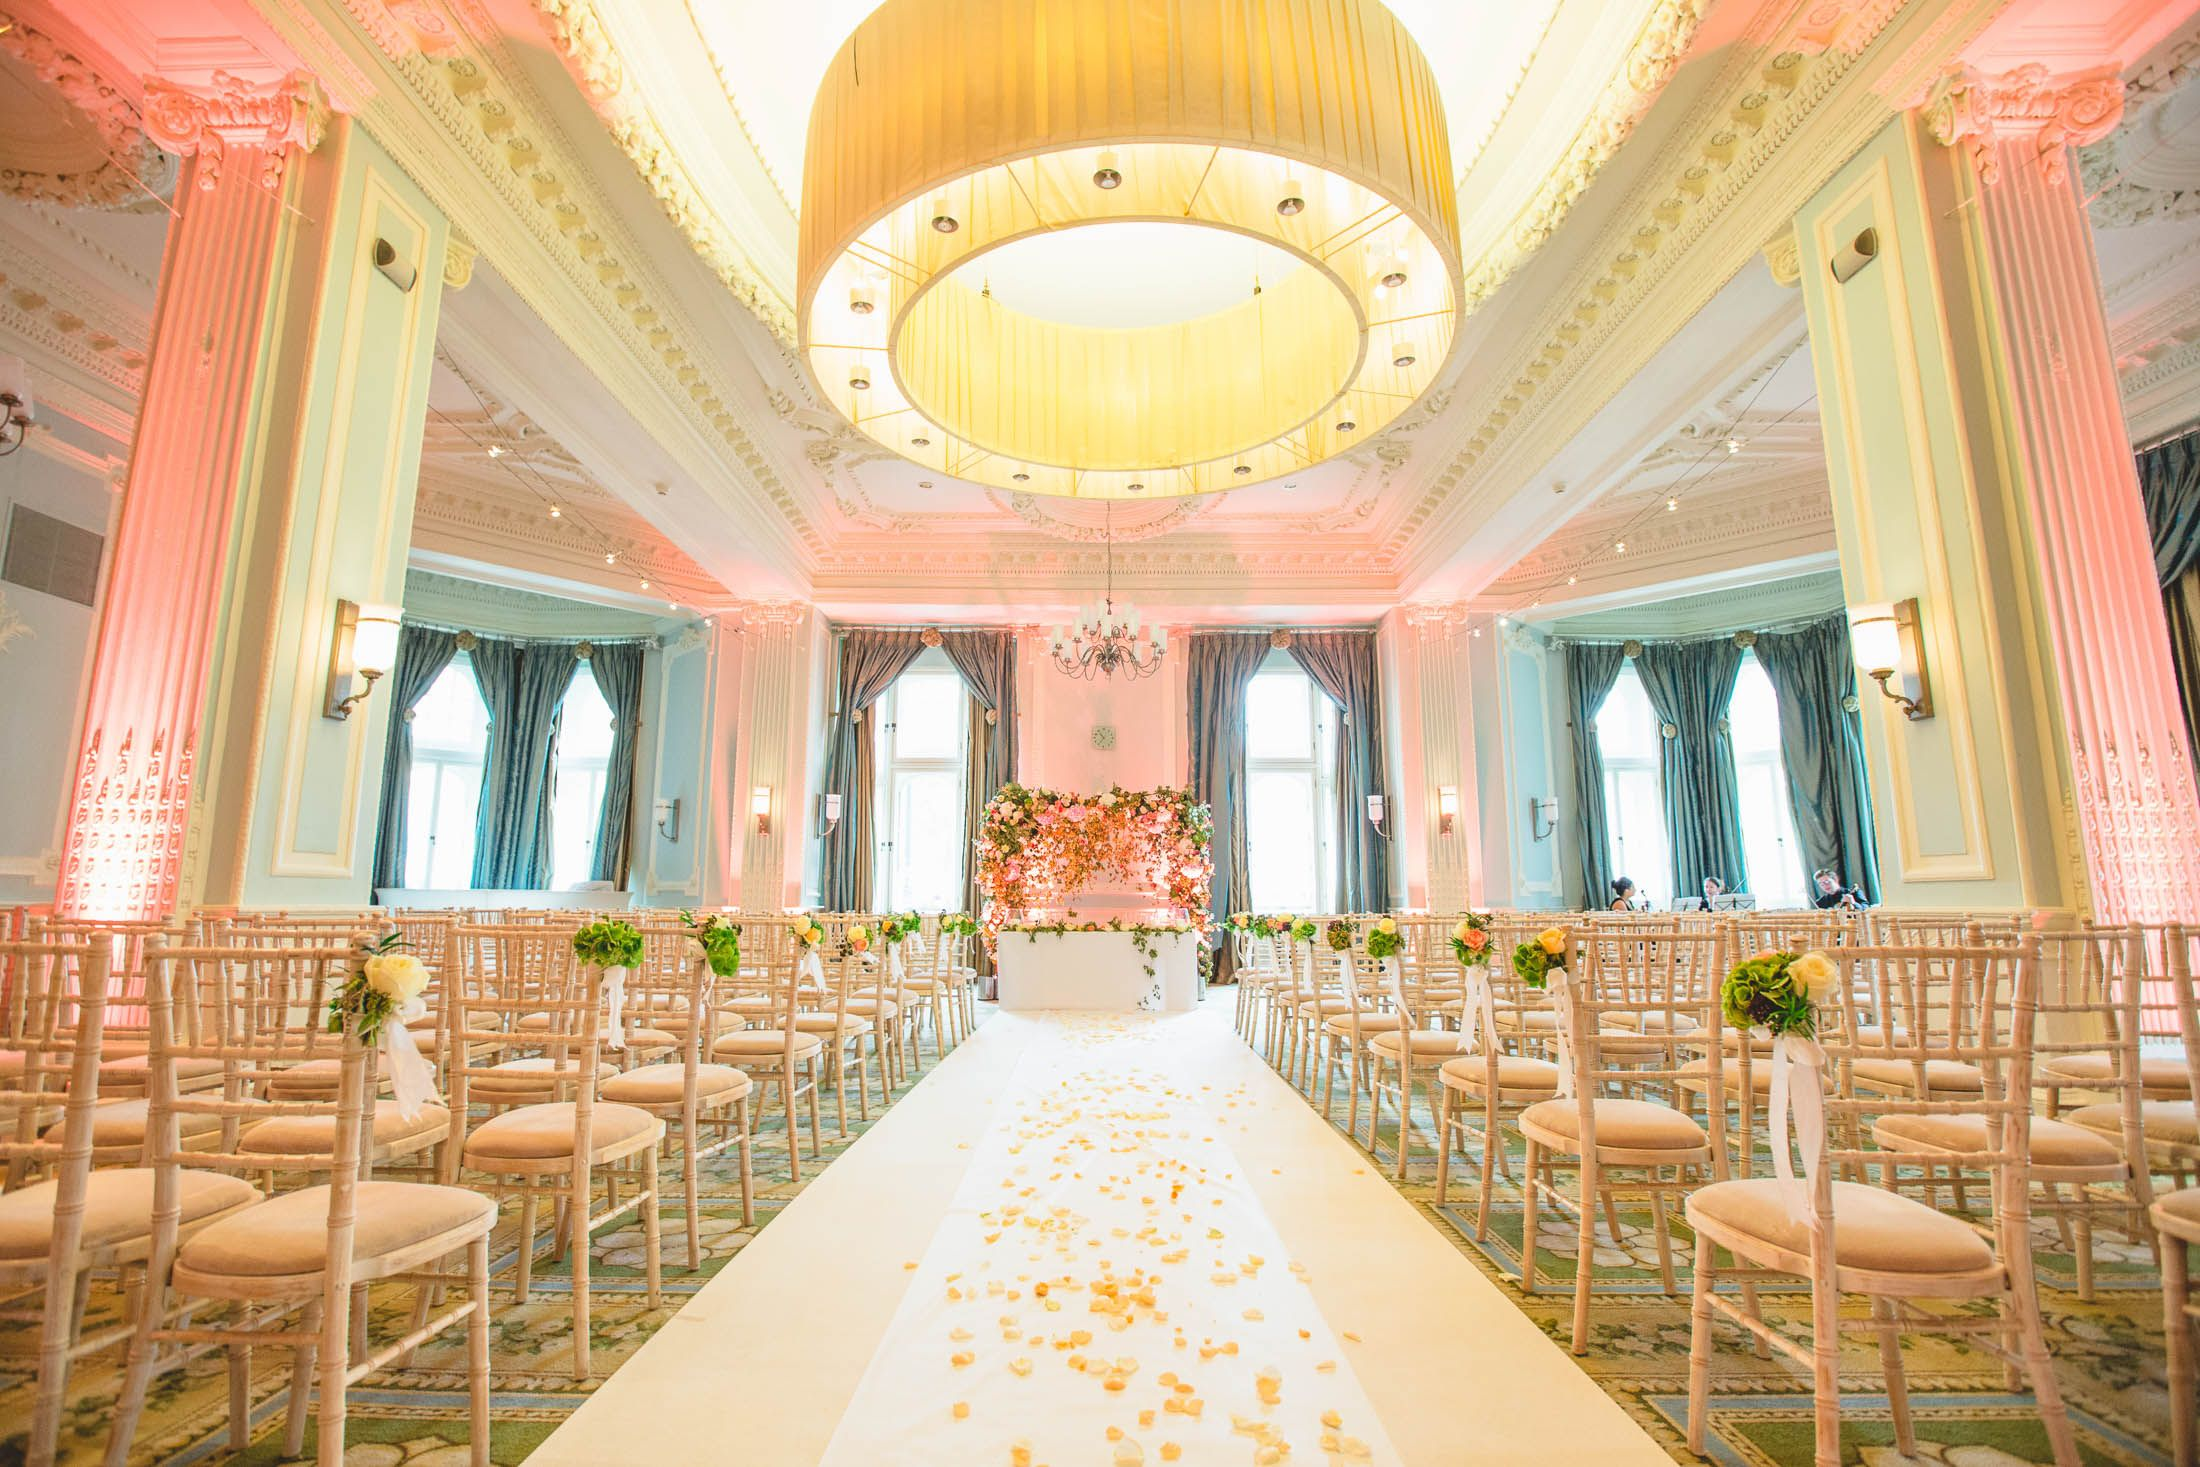 Midland Hotel The Trafford Room Decorated By Springbank Flowers